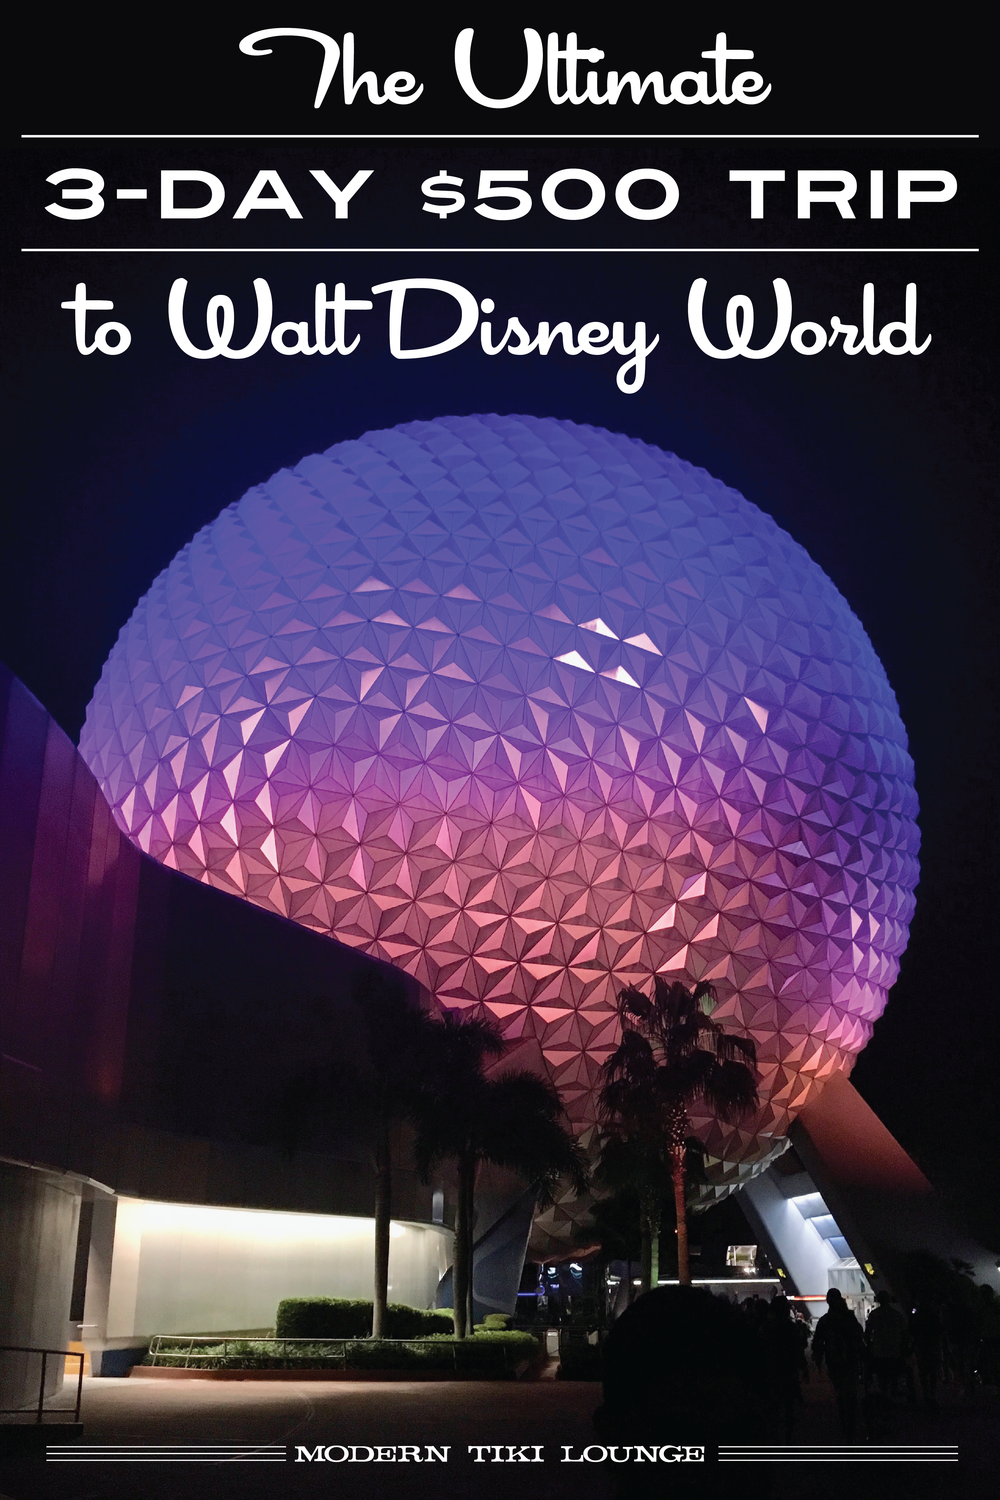 ultimate-3-day-500-trip-to-walt-disney-world.jpg